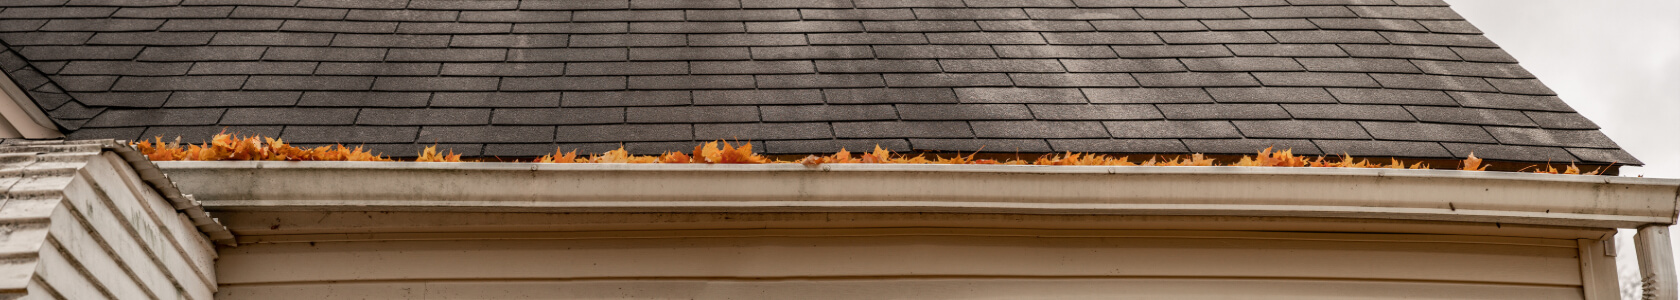 fall leaves fill a roof gutter